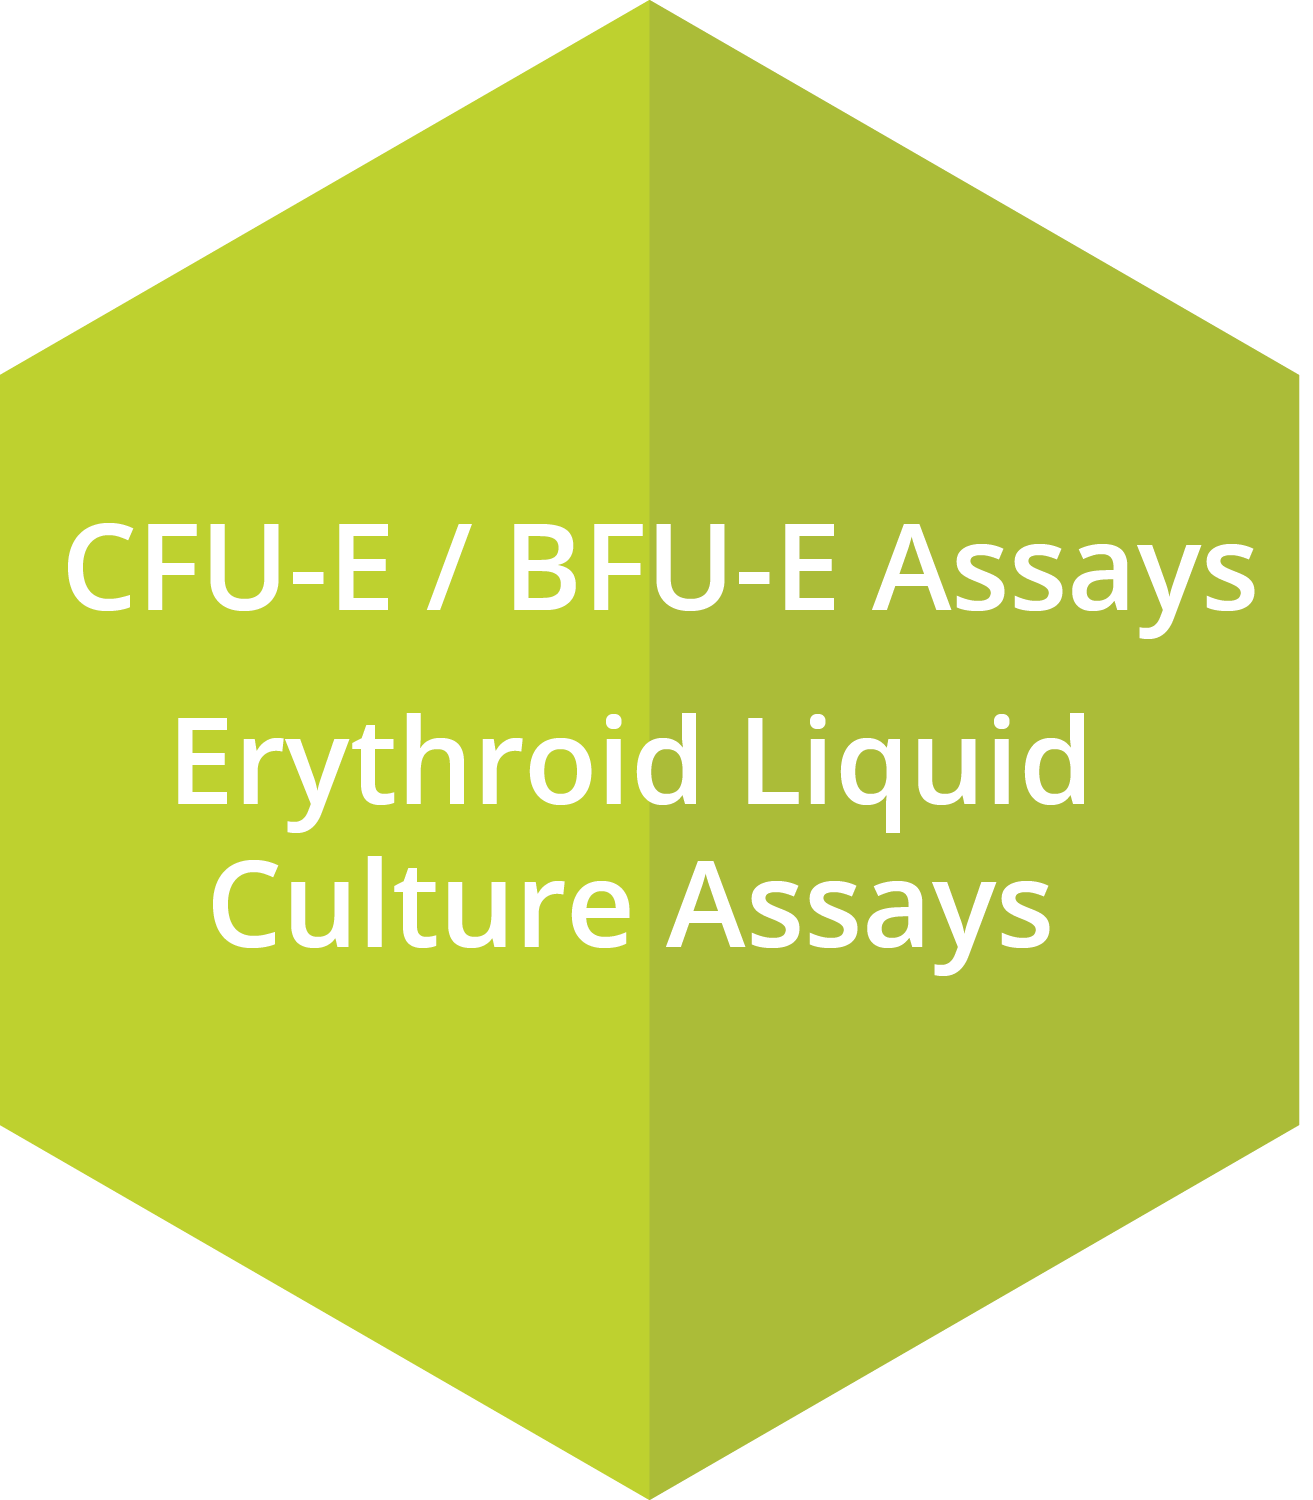 CFU-E assays, BFU-E assays, Erythroid Liqiud Culture assays